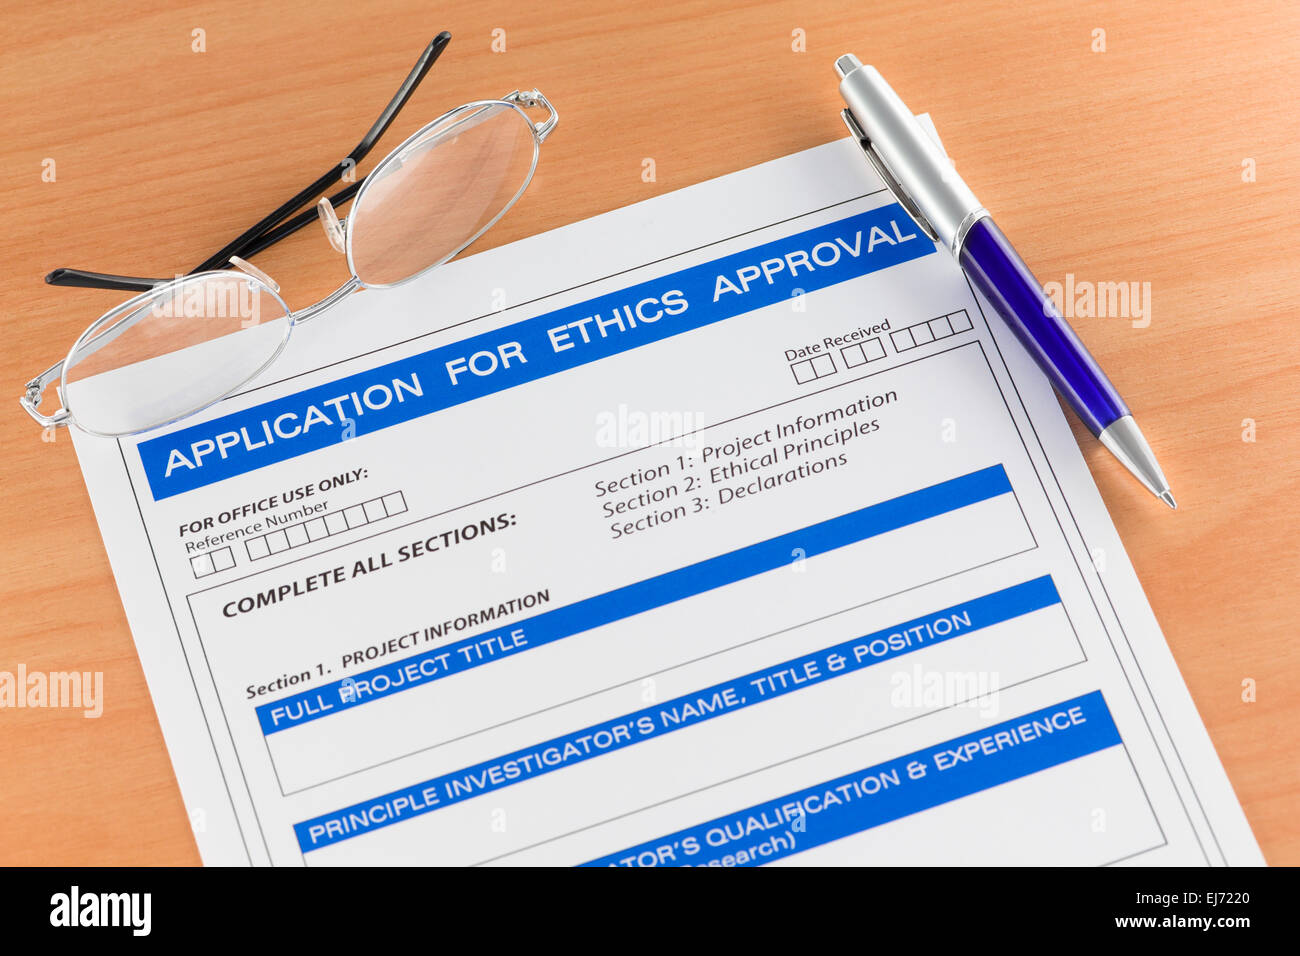 Application for Ethics Approval Form on Table Stock Photo